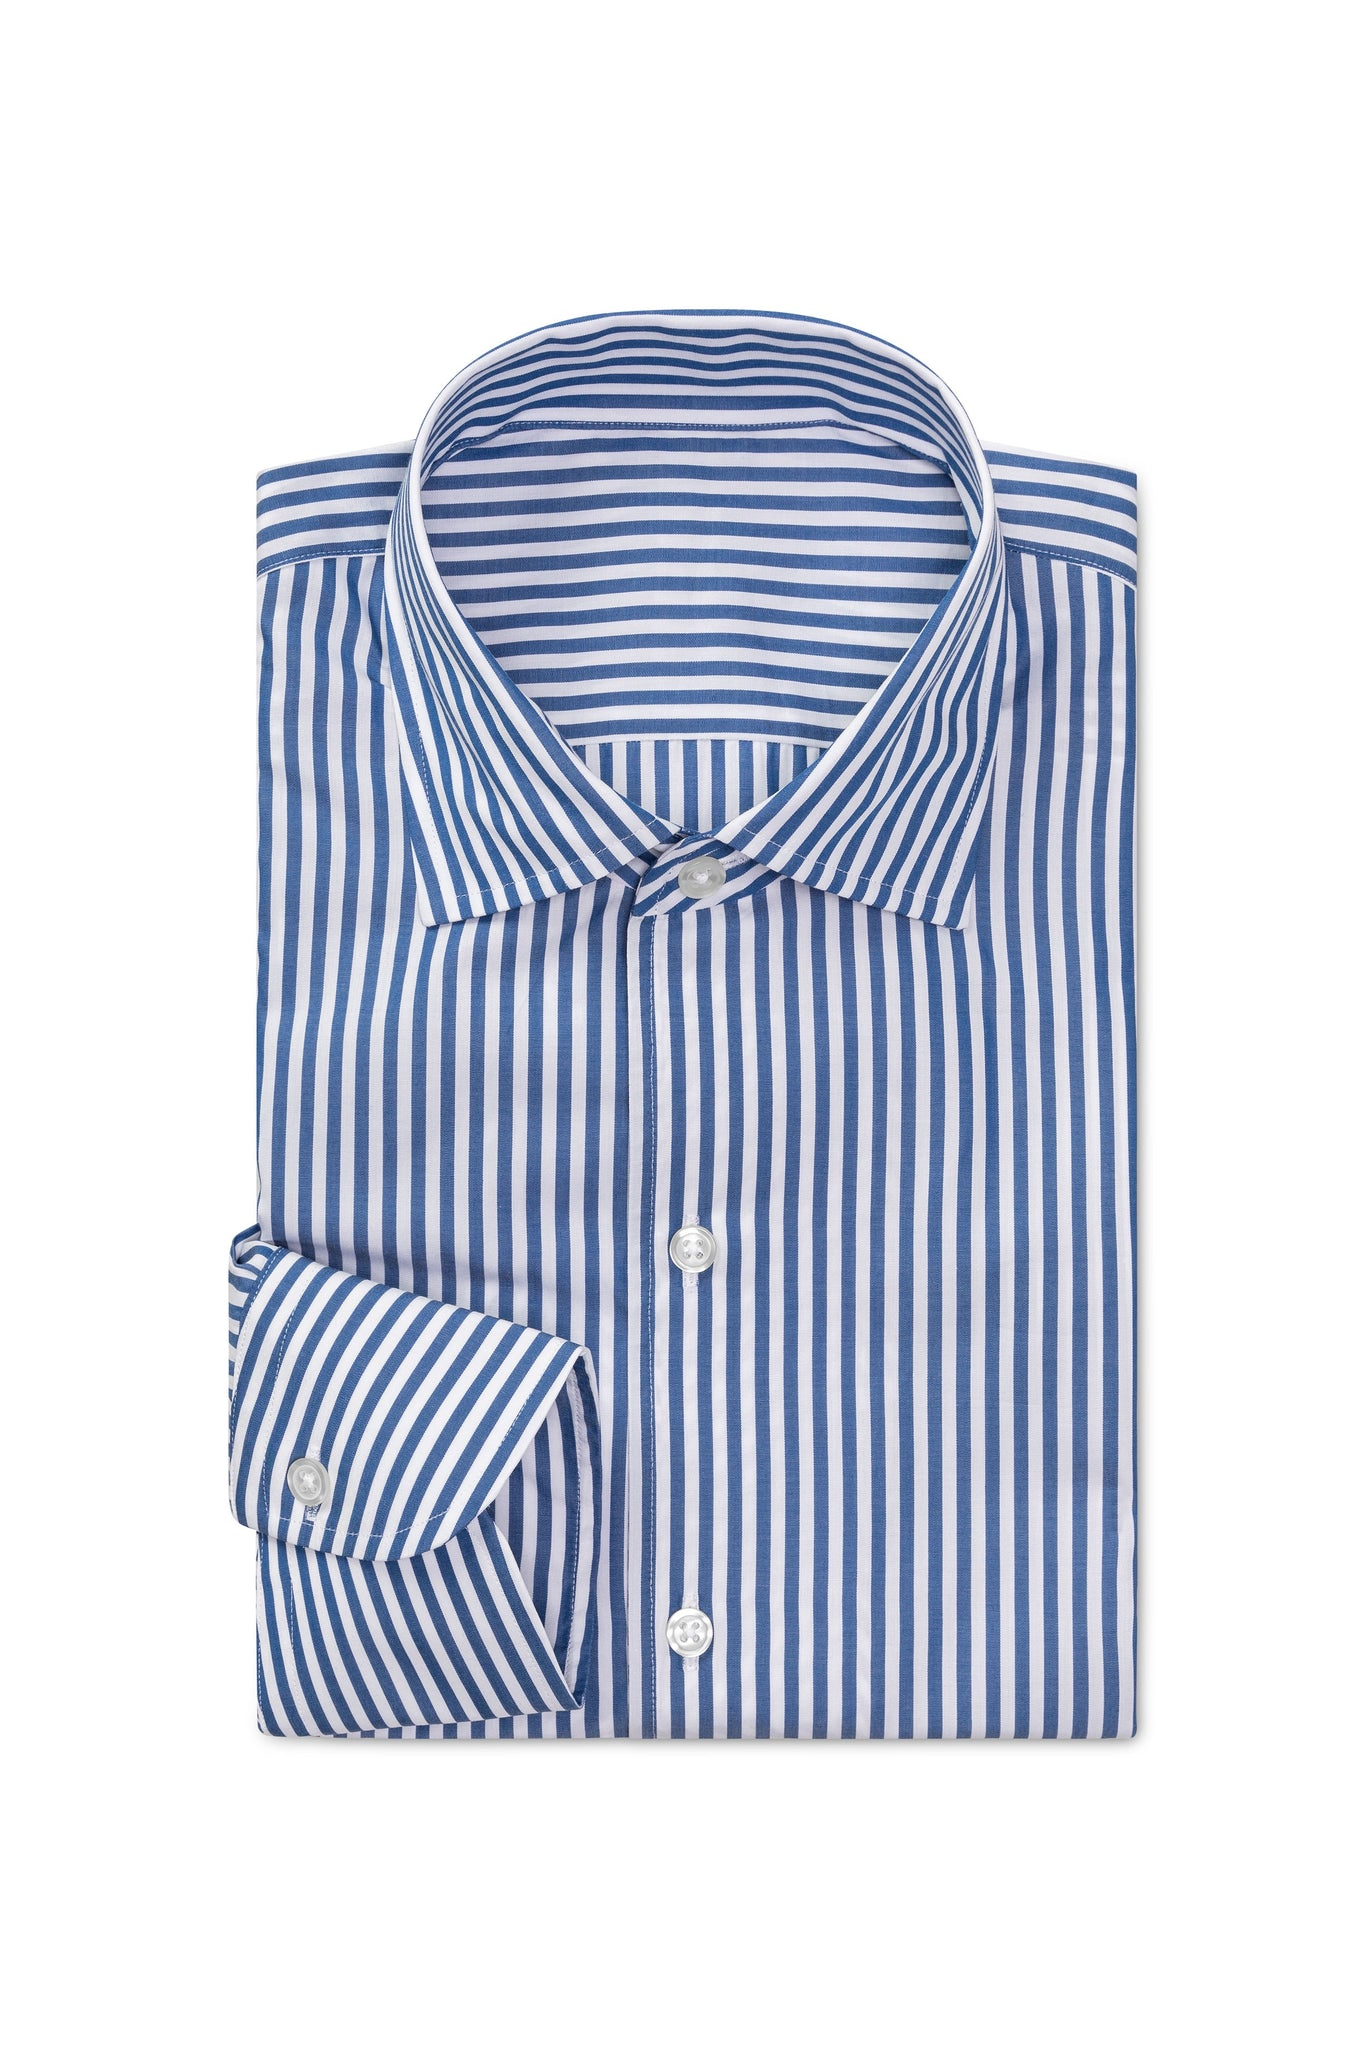 Denim Tone Poplin Stripe Made to Order Shirt